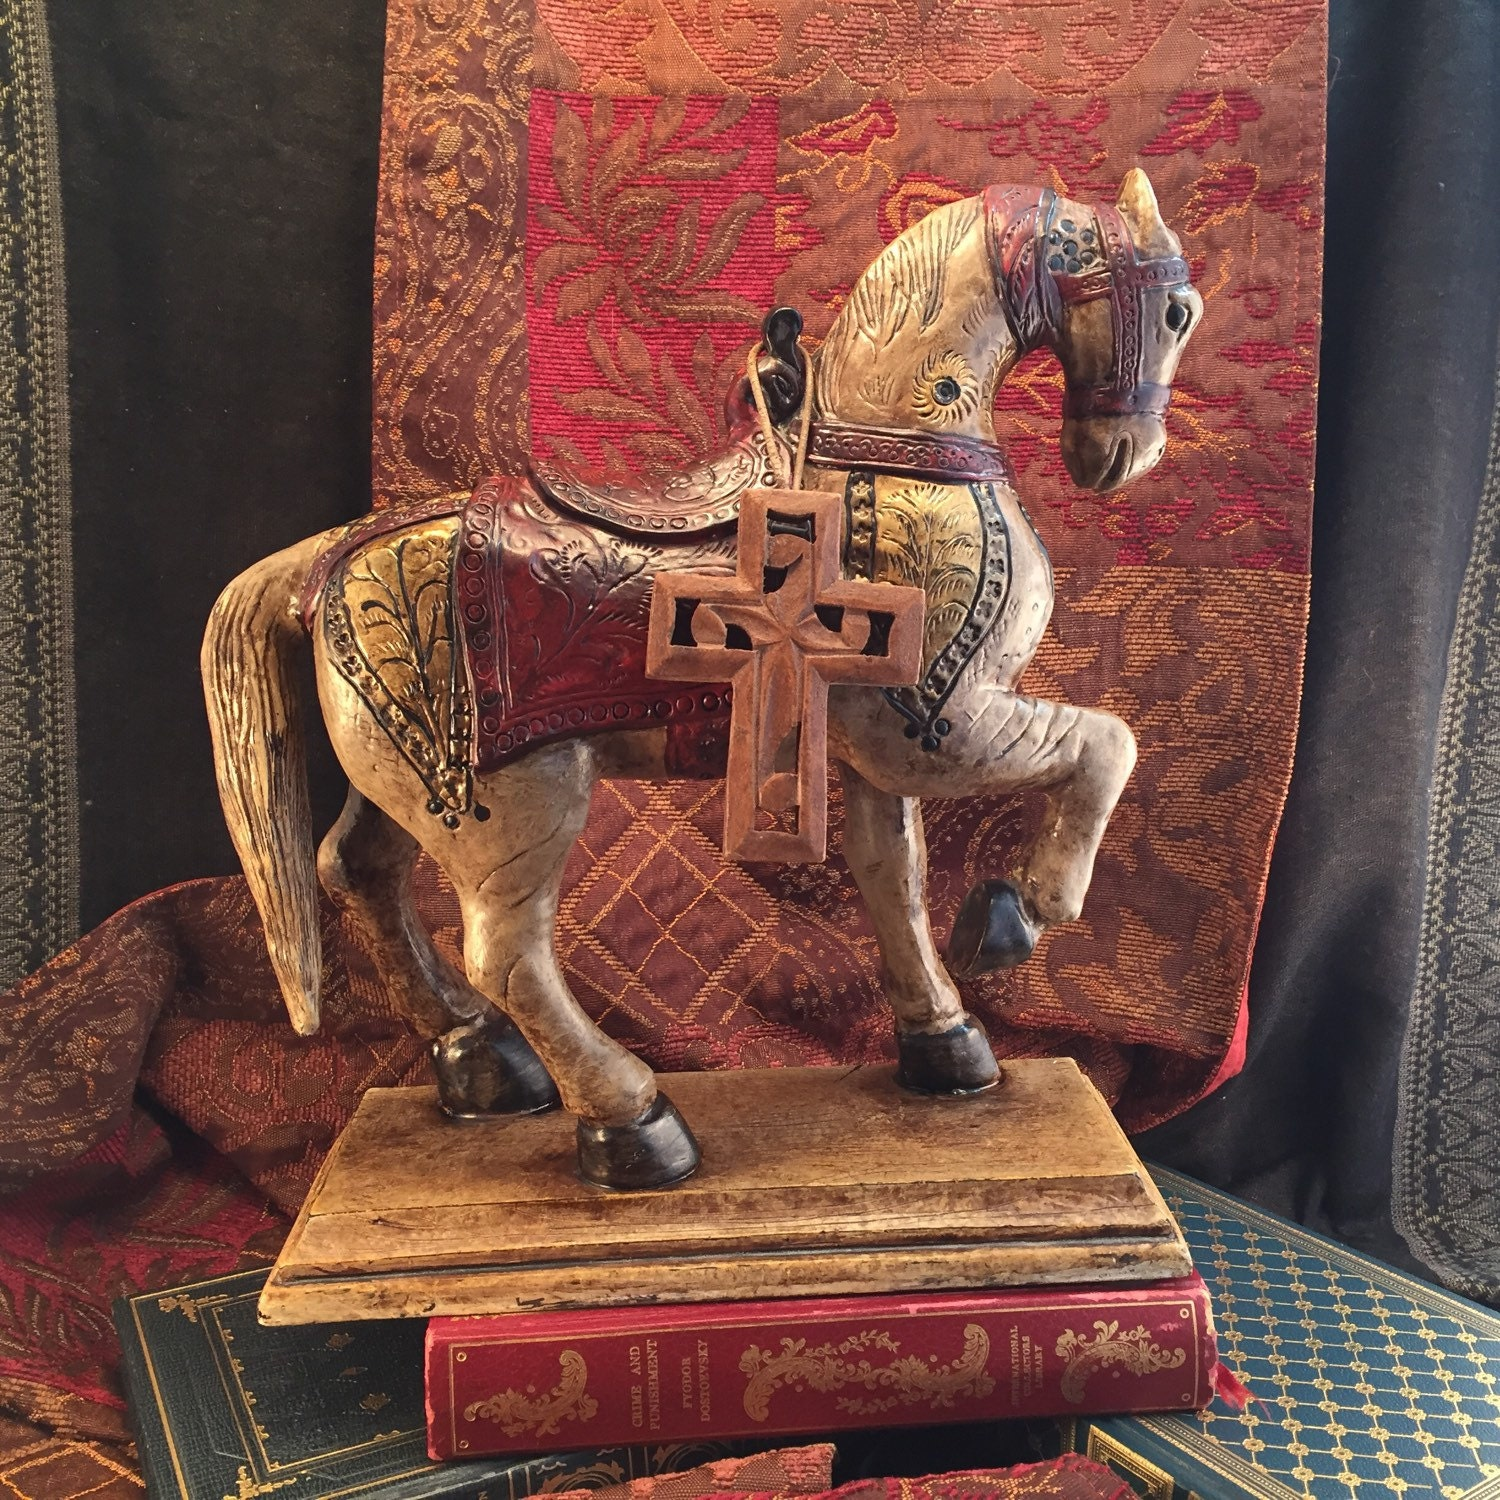 decorated horse statue asian style decor hand painted emperor. Black Bedroom Furniture Sets. Home Design Ideas